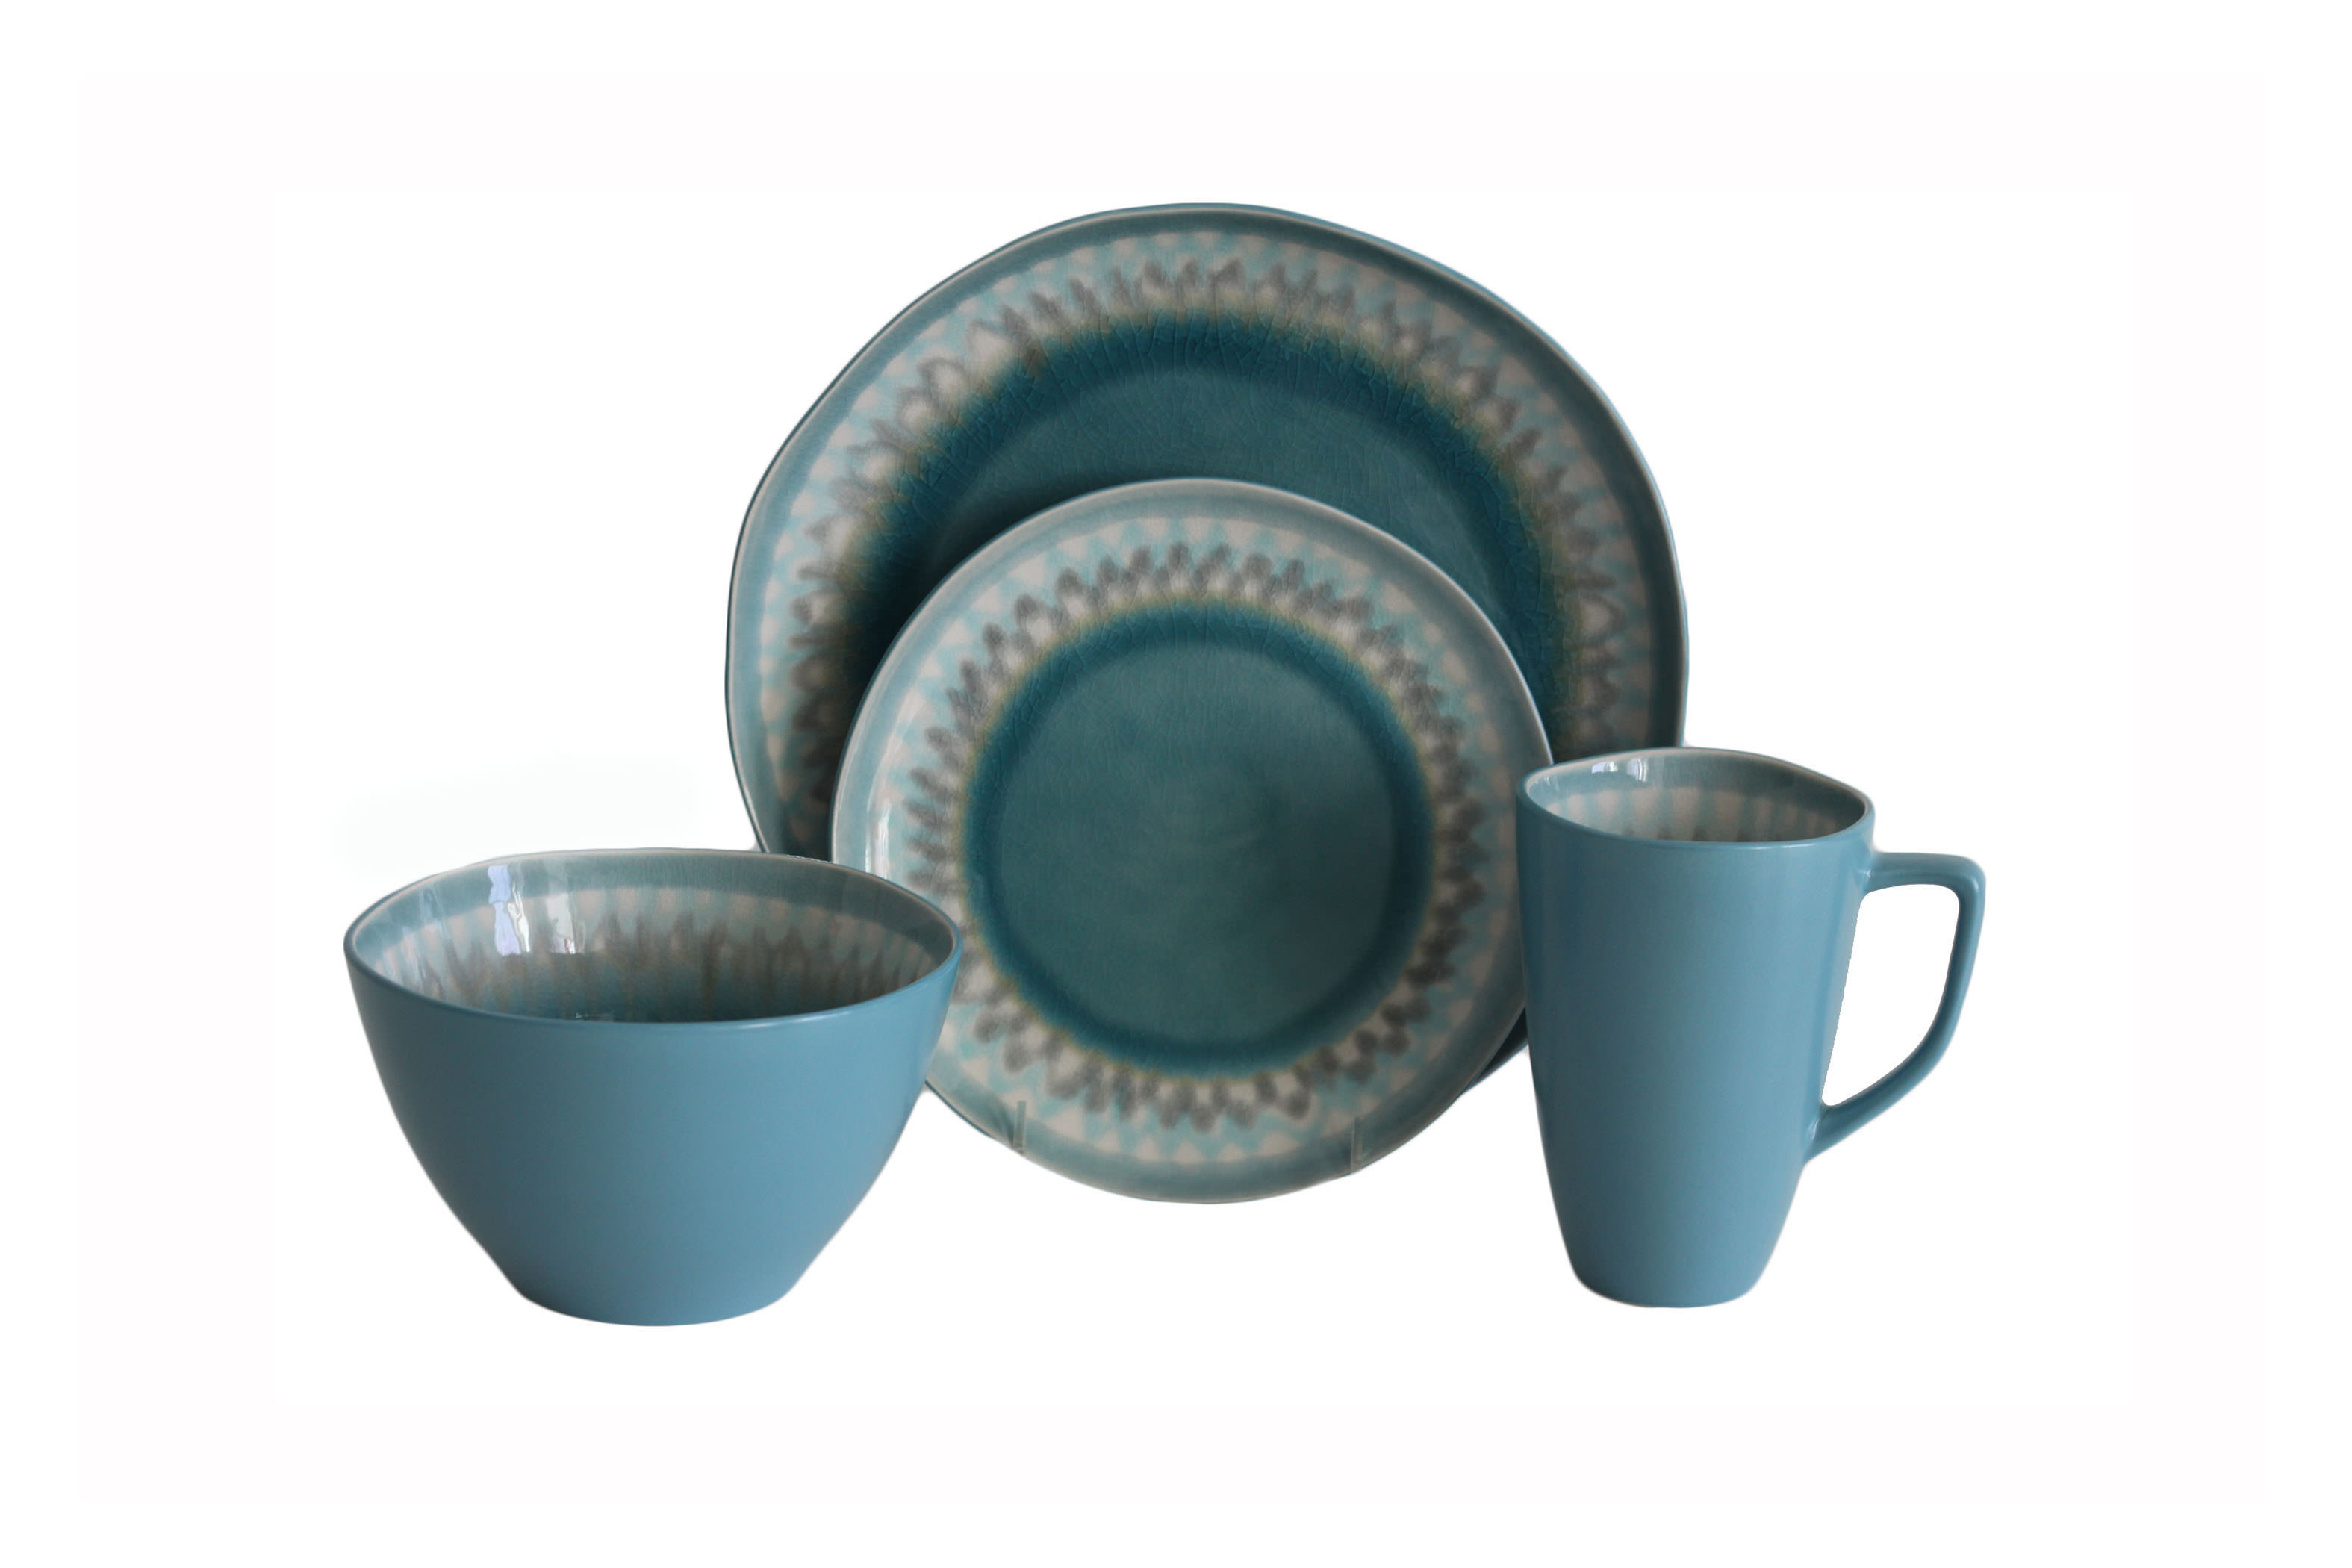 Baum Aqua Blue Burst 16-Piece Dinnerware Set by Baum Brothers Imports